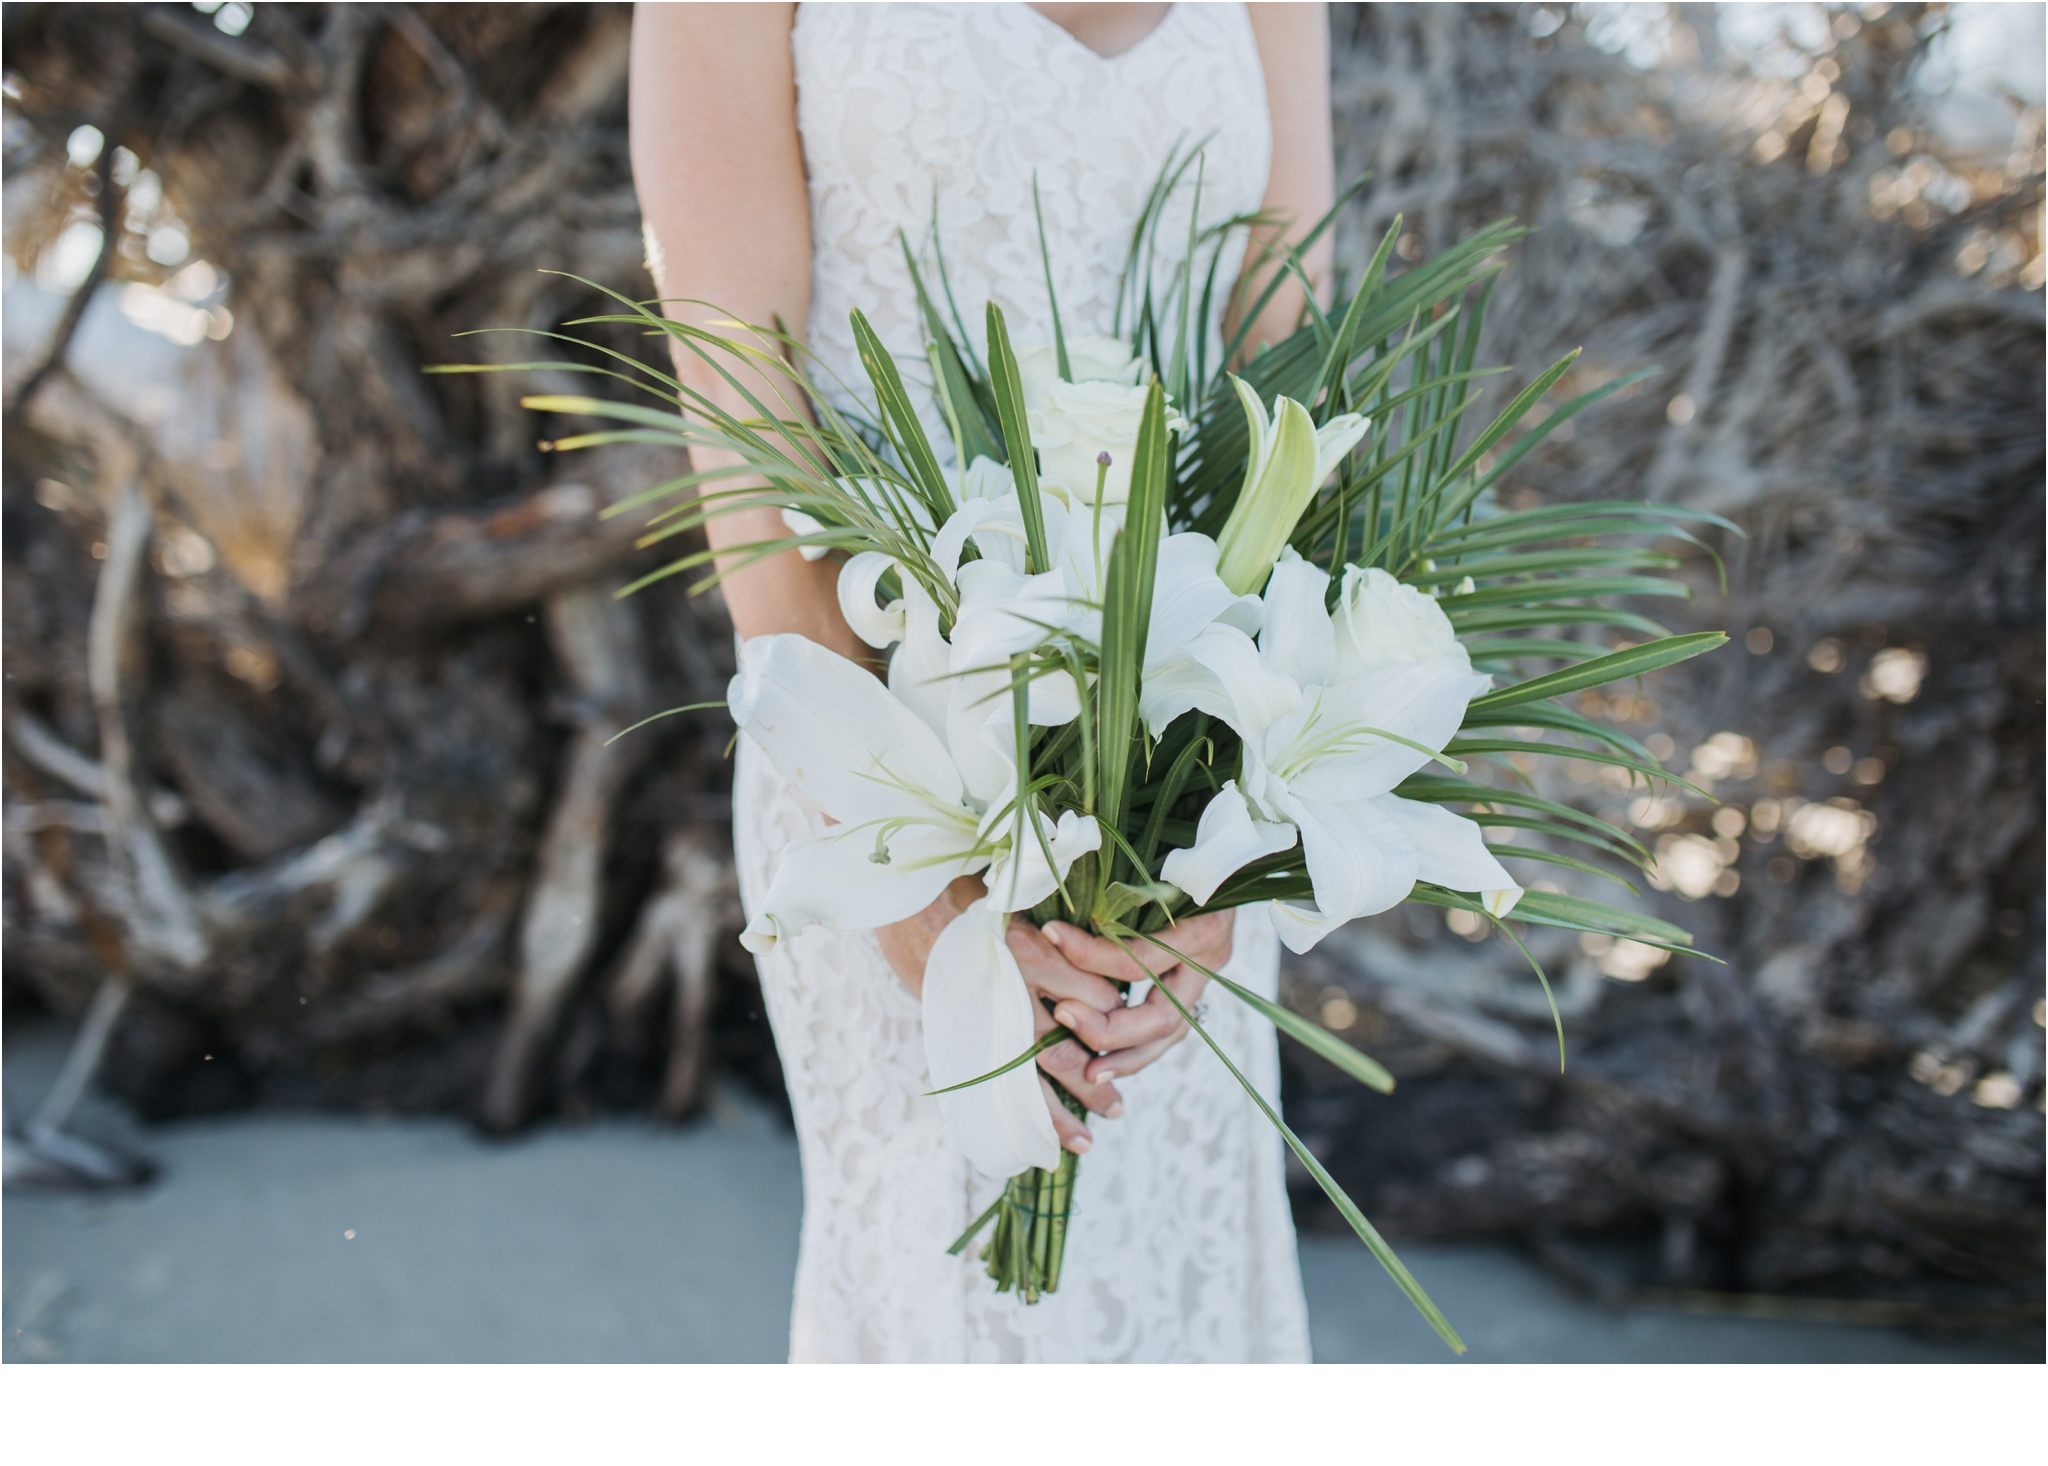 Rainey_Gregg_Photography_St._Simons_Island_Georgia_California_Wedding_Portrait_Photography_1574.jpg